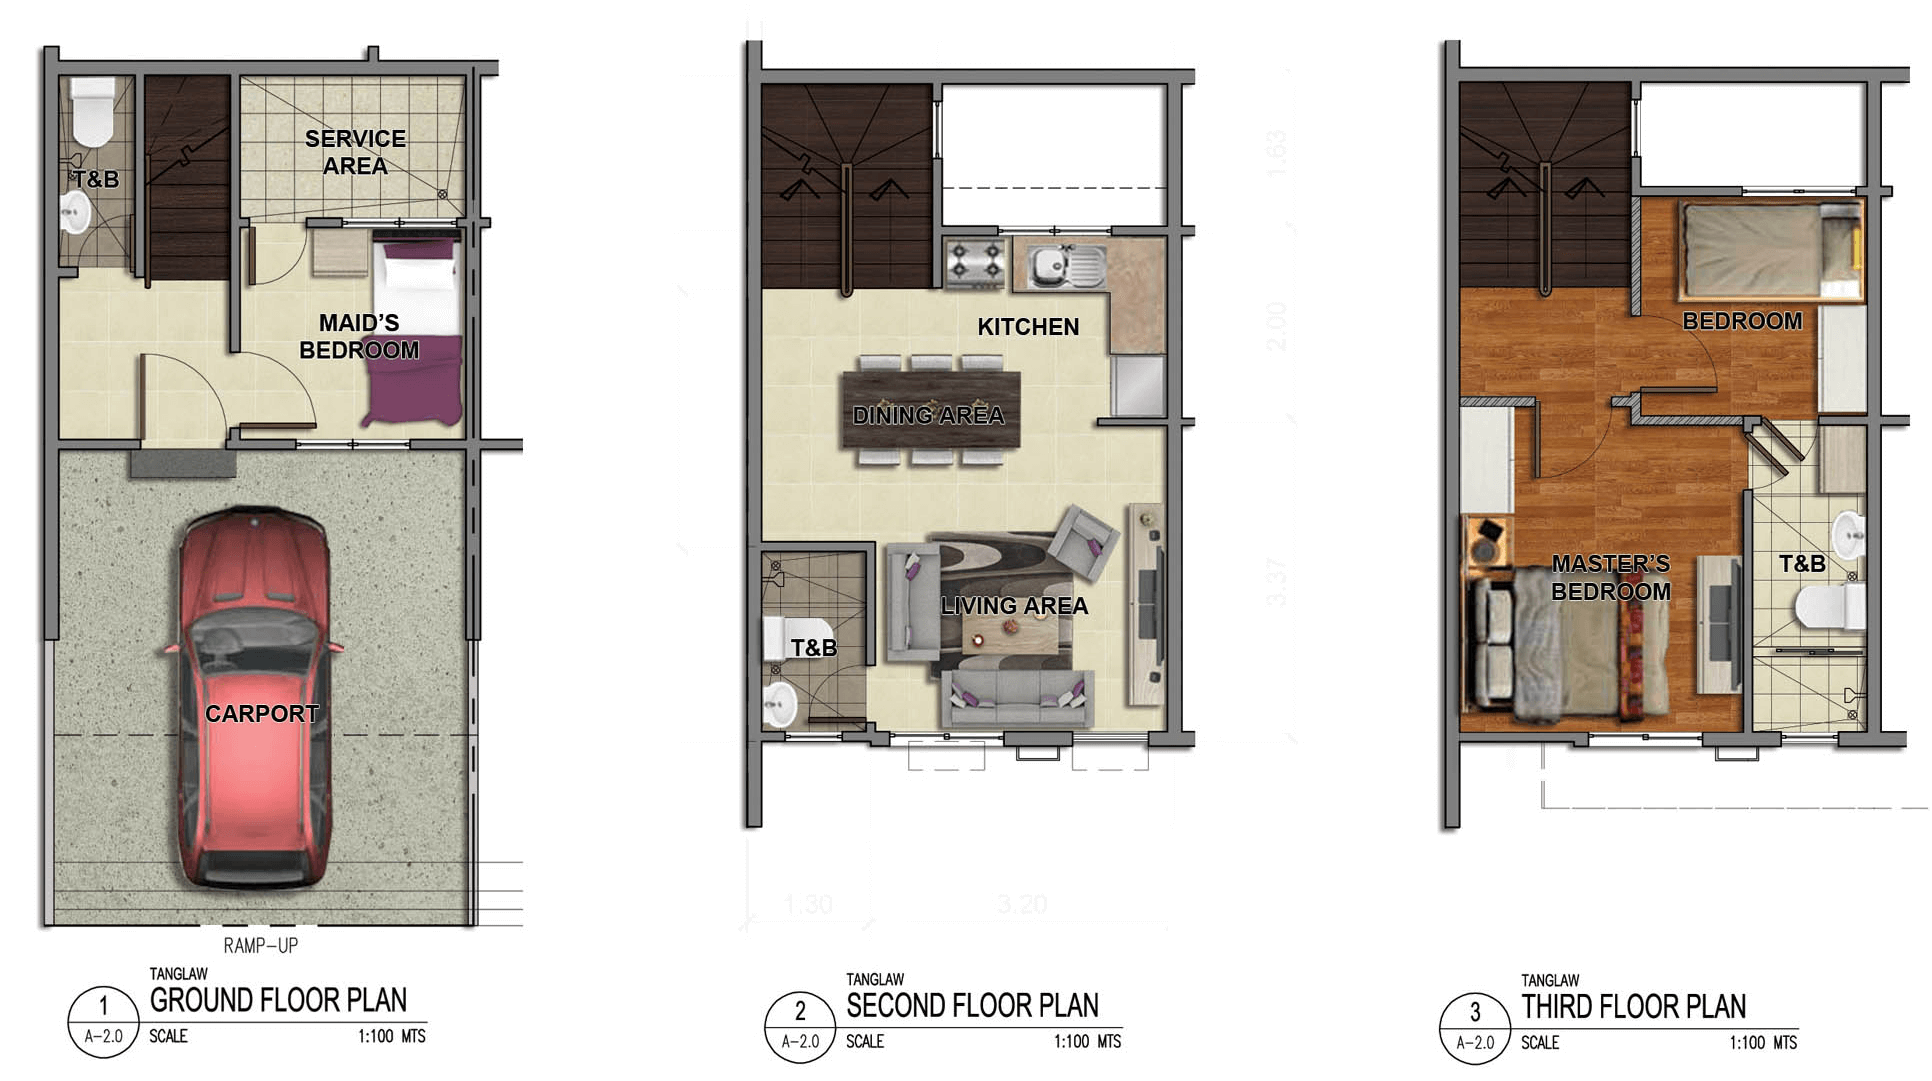 Tanglaw Residences Floor Plan